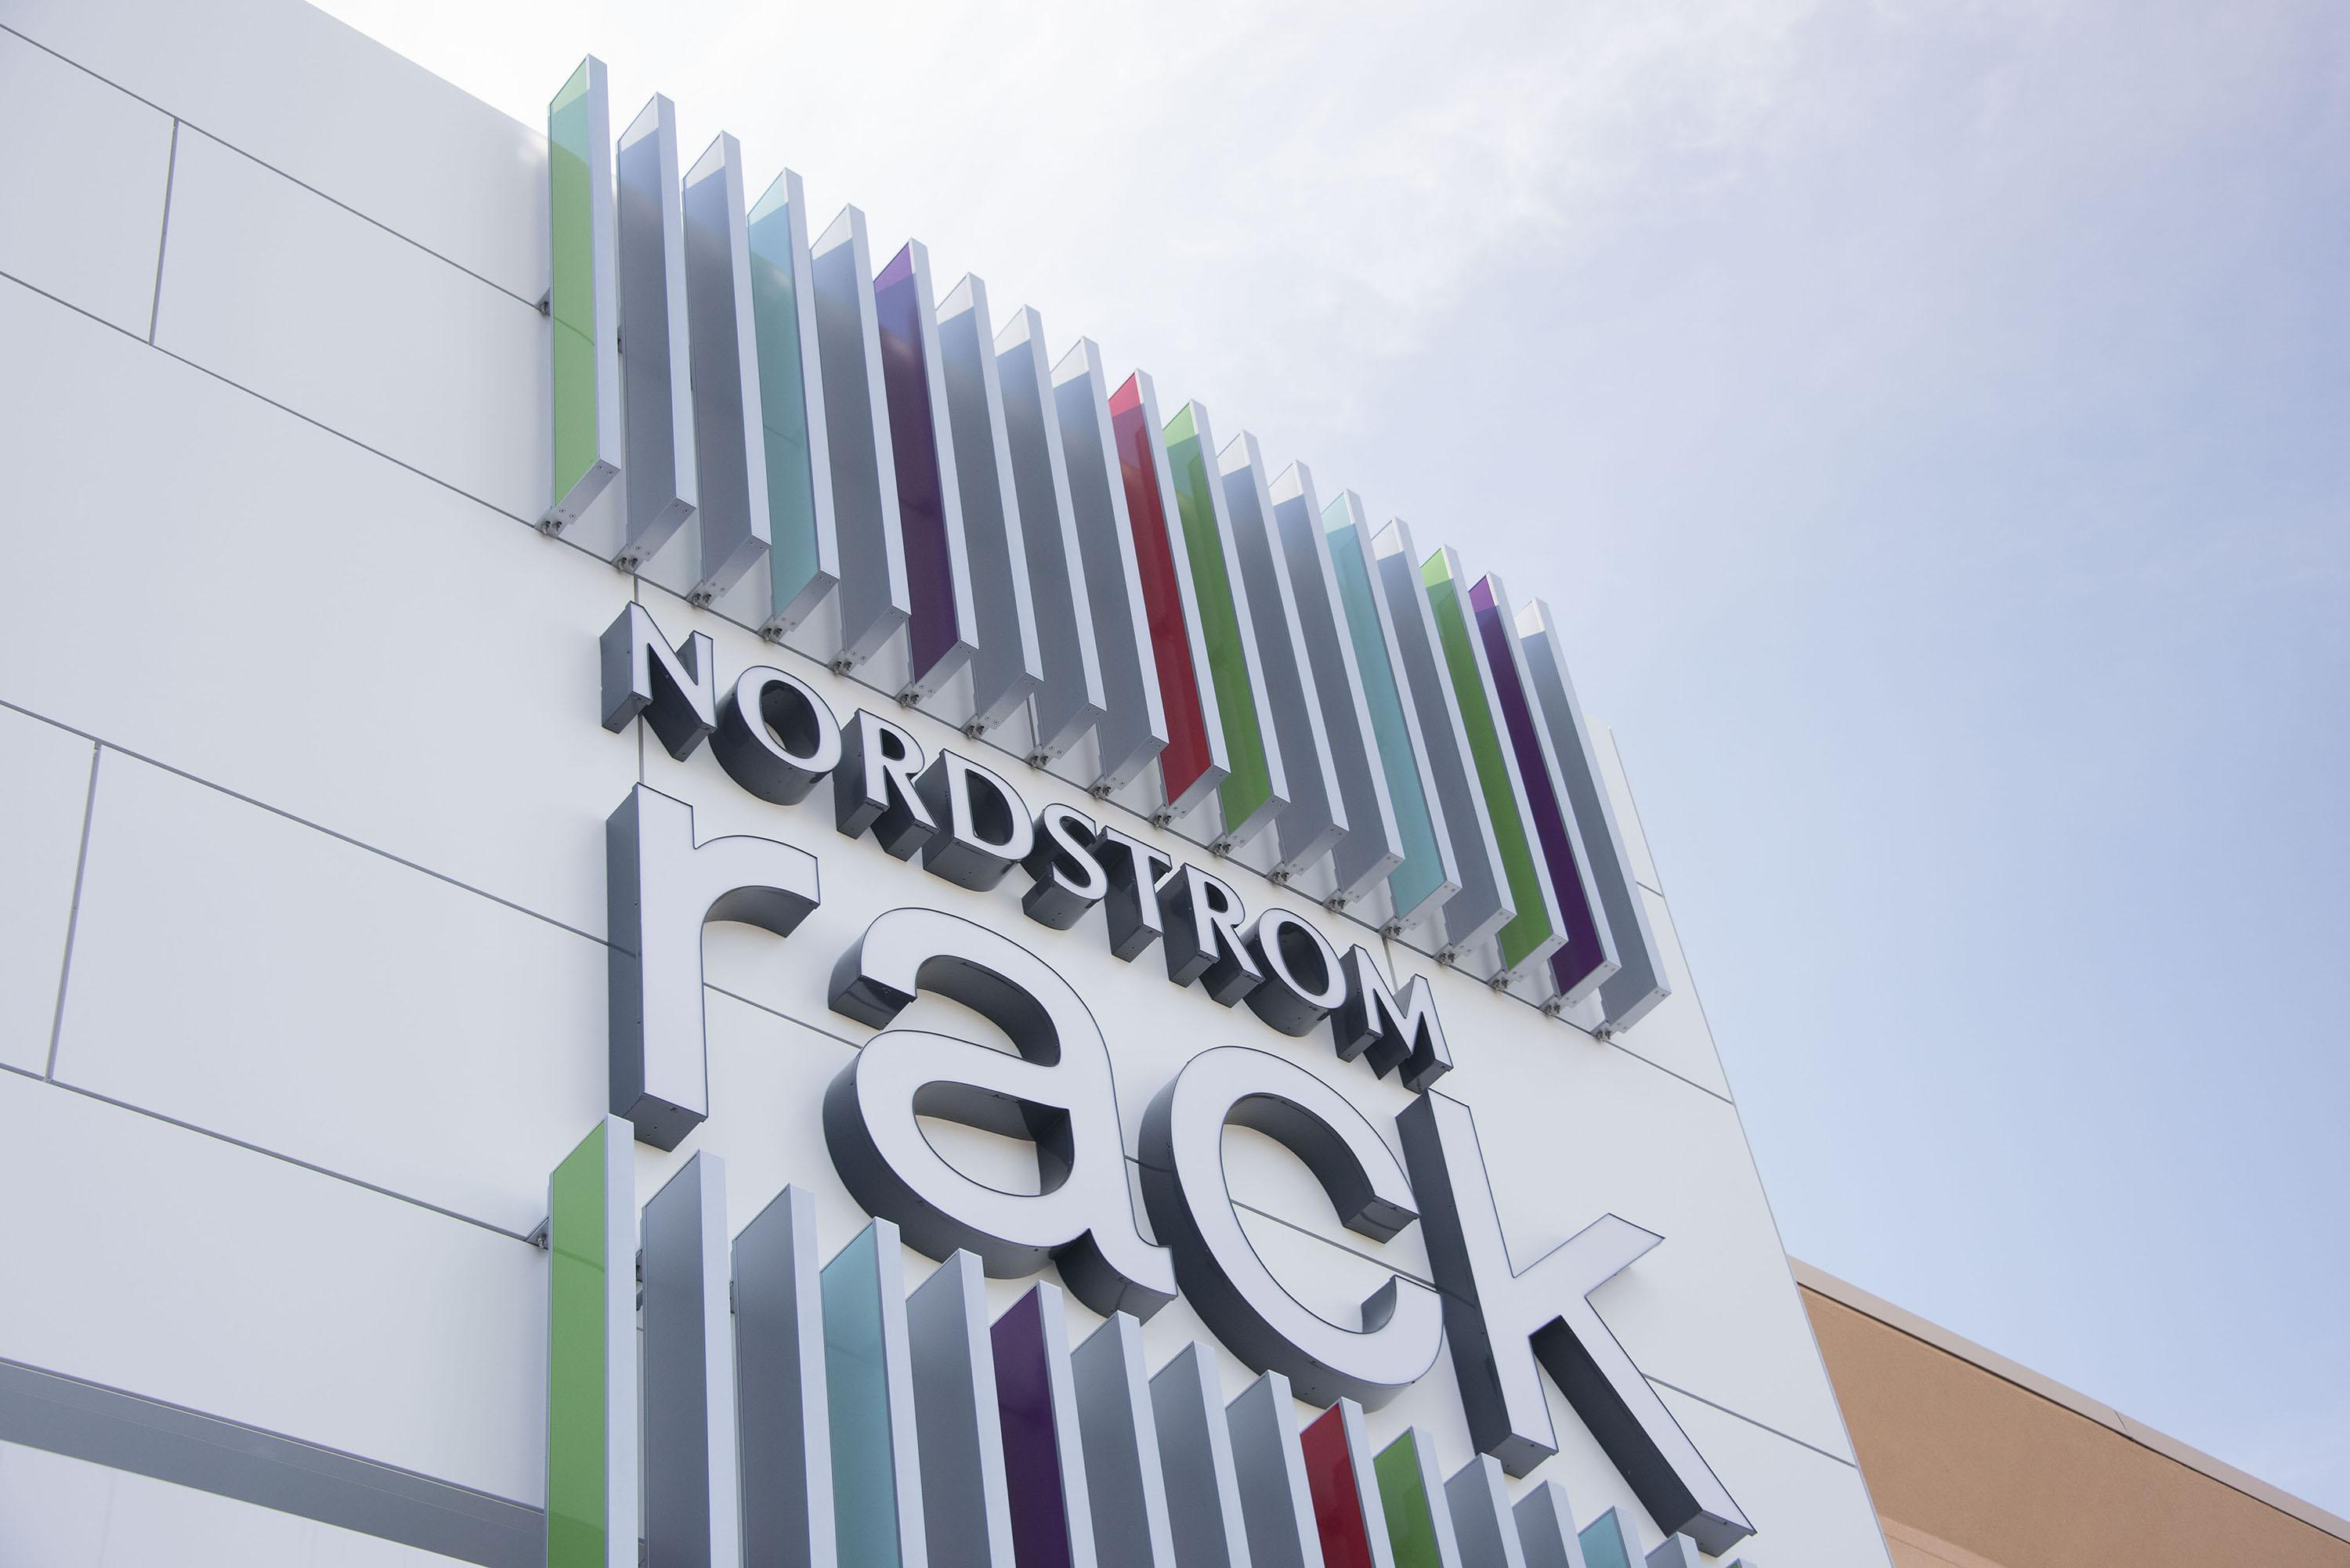 nordstrom employee issues Blast emails with messages focusing on positive employee relations  business-school-case-study-nordstrom-dissension-in-the-ranks/  issues and problems at.